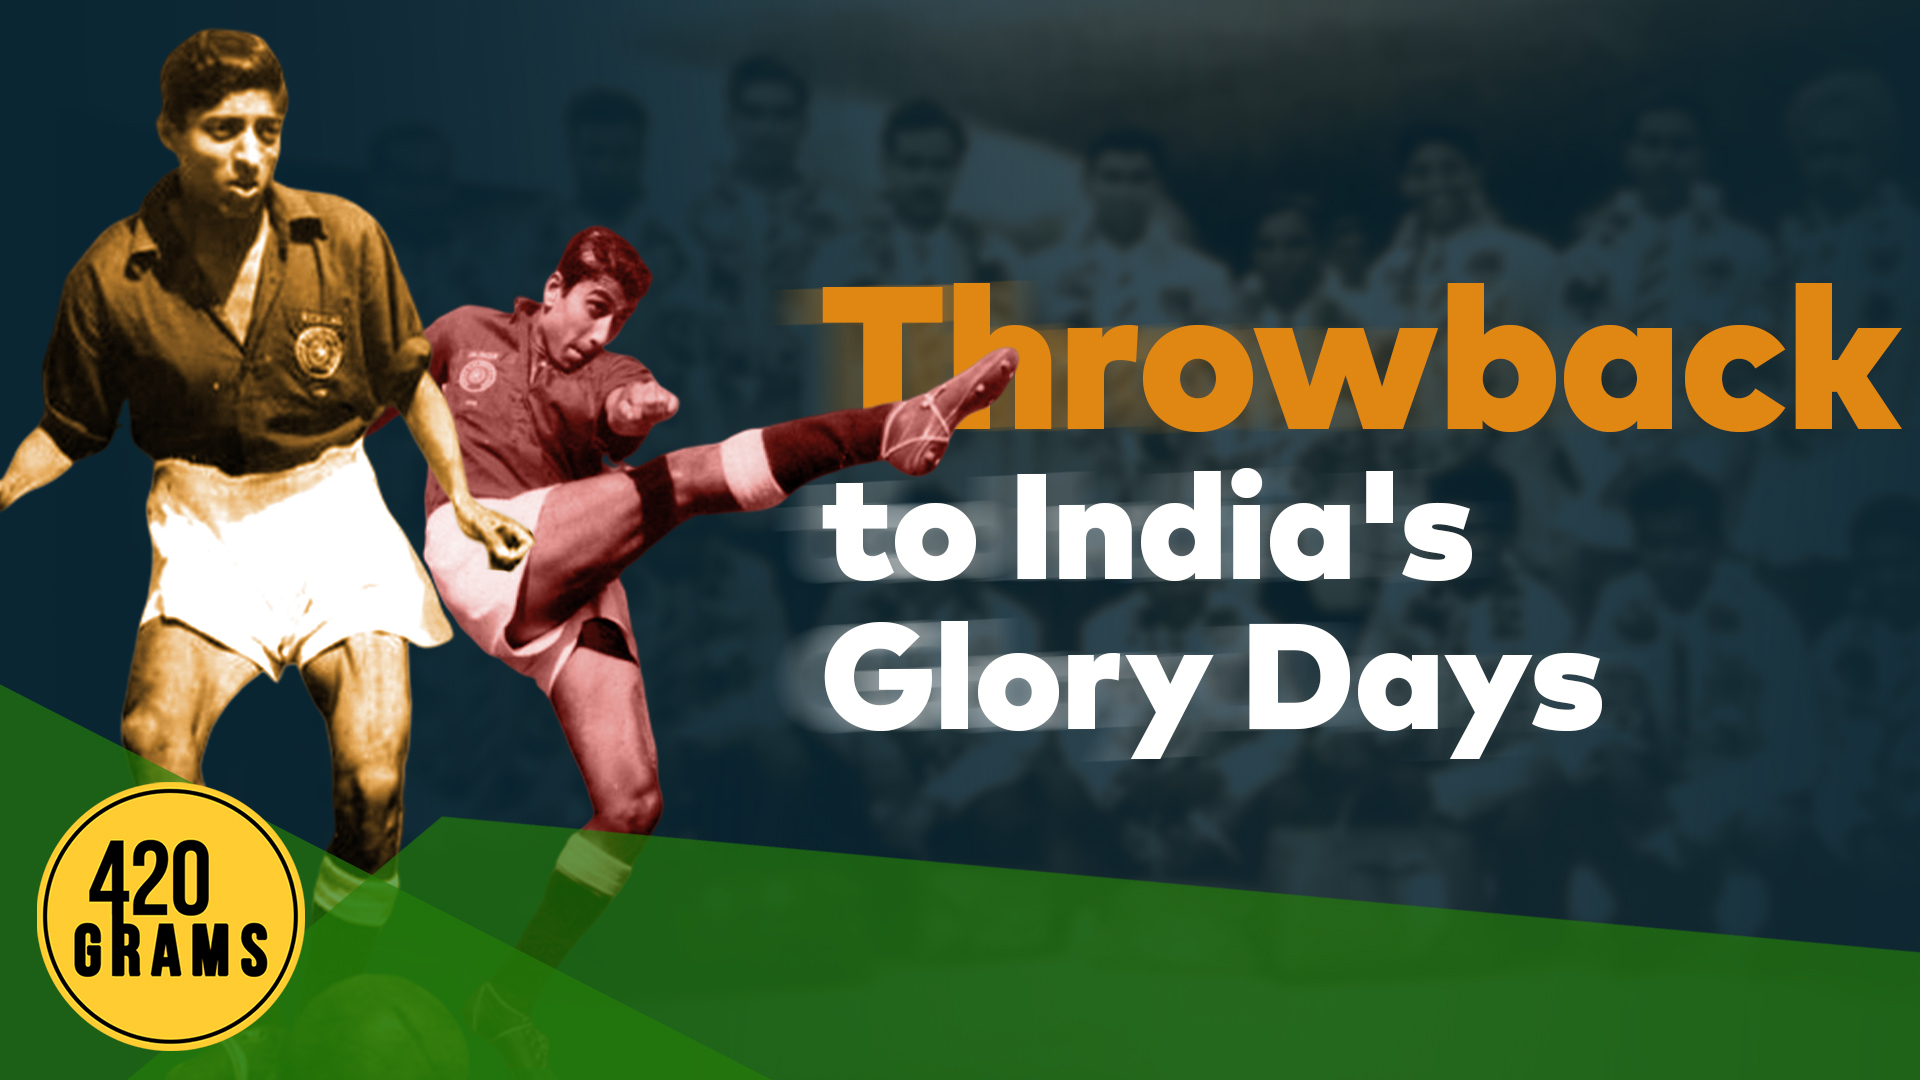 Tribute to Chuni Goswami and PK Banerjee and Indian football's golden days